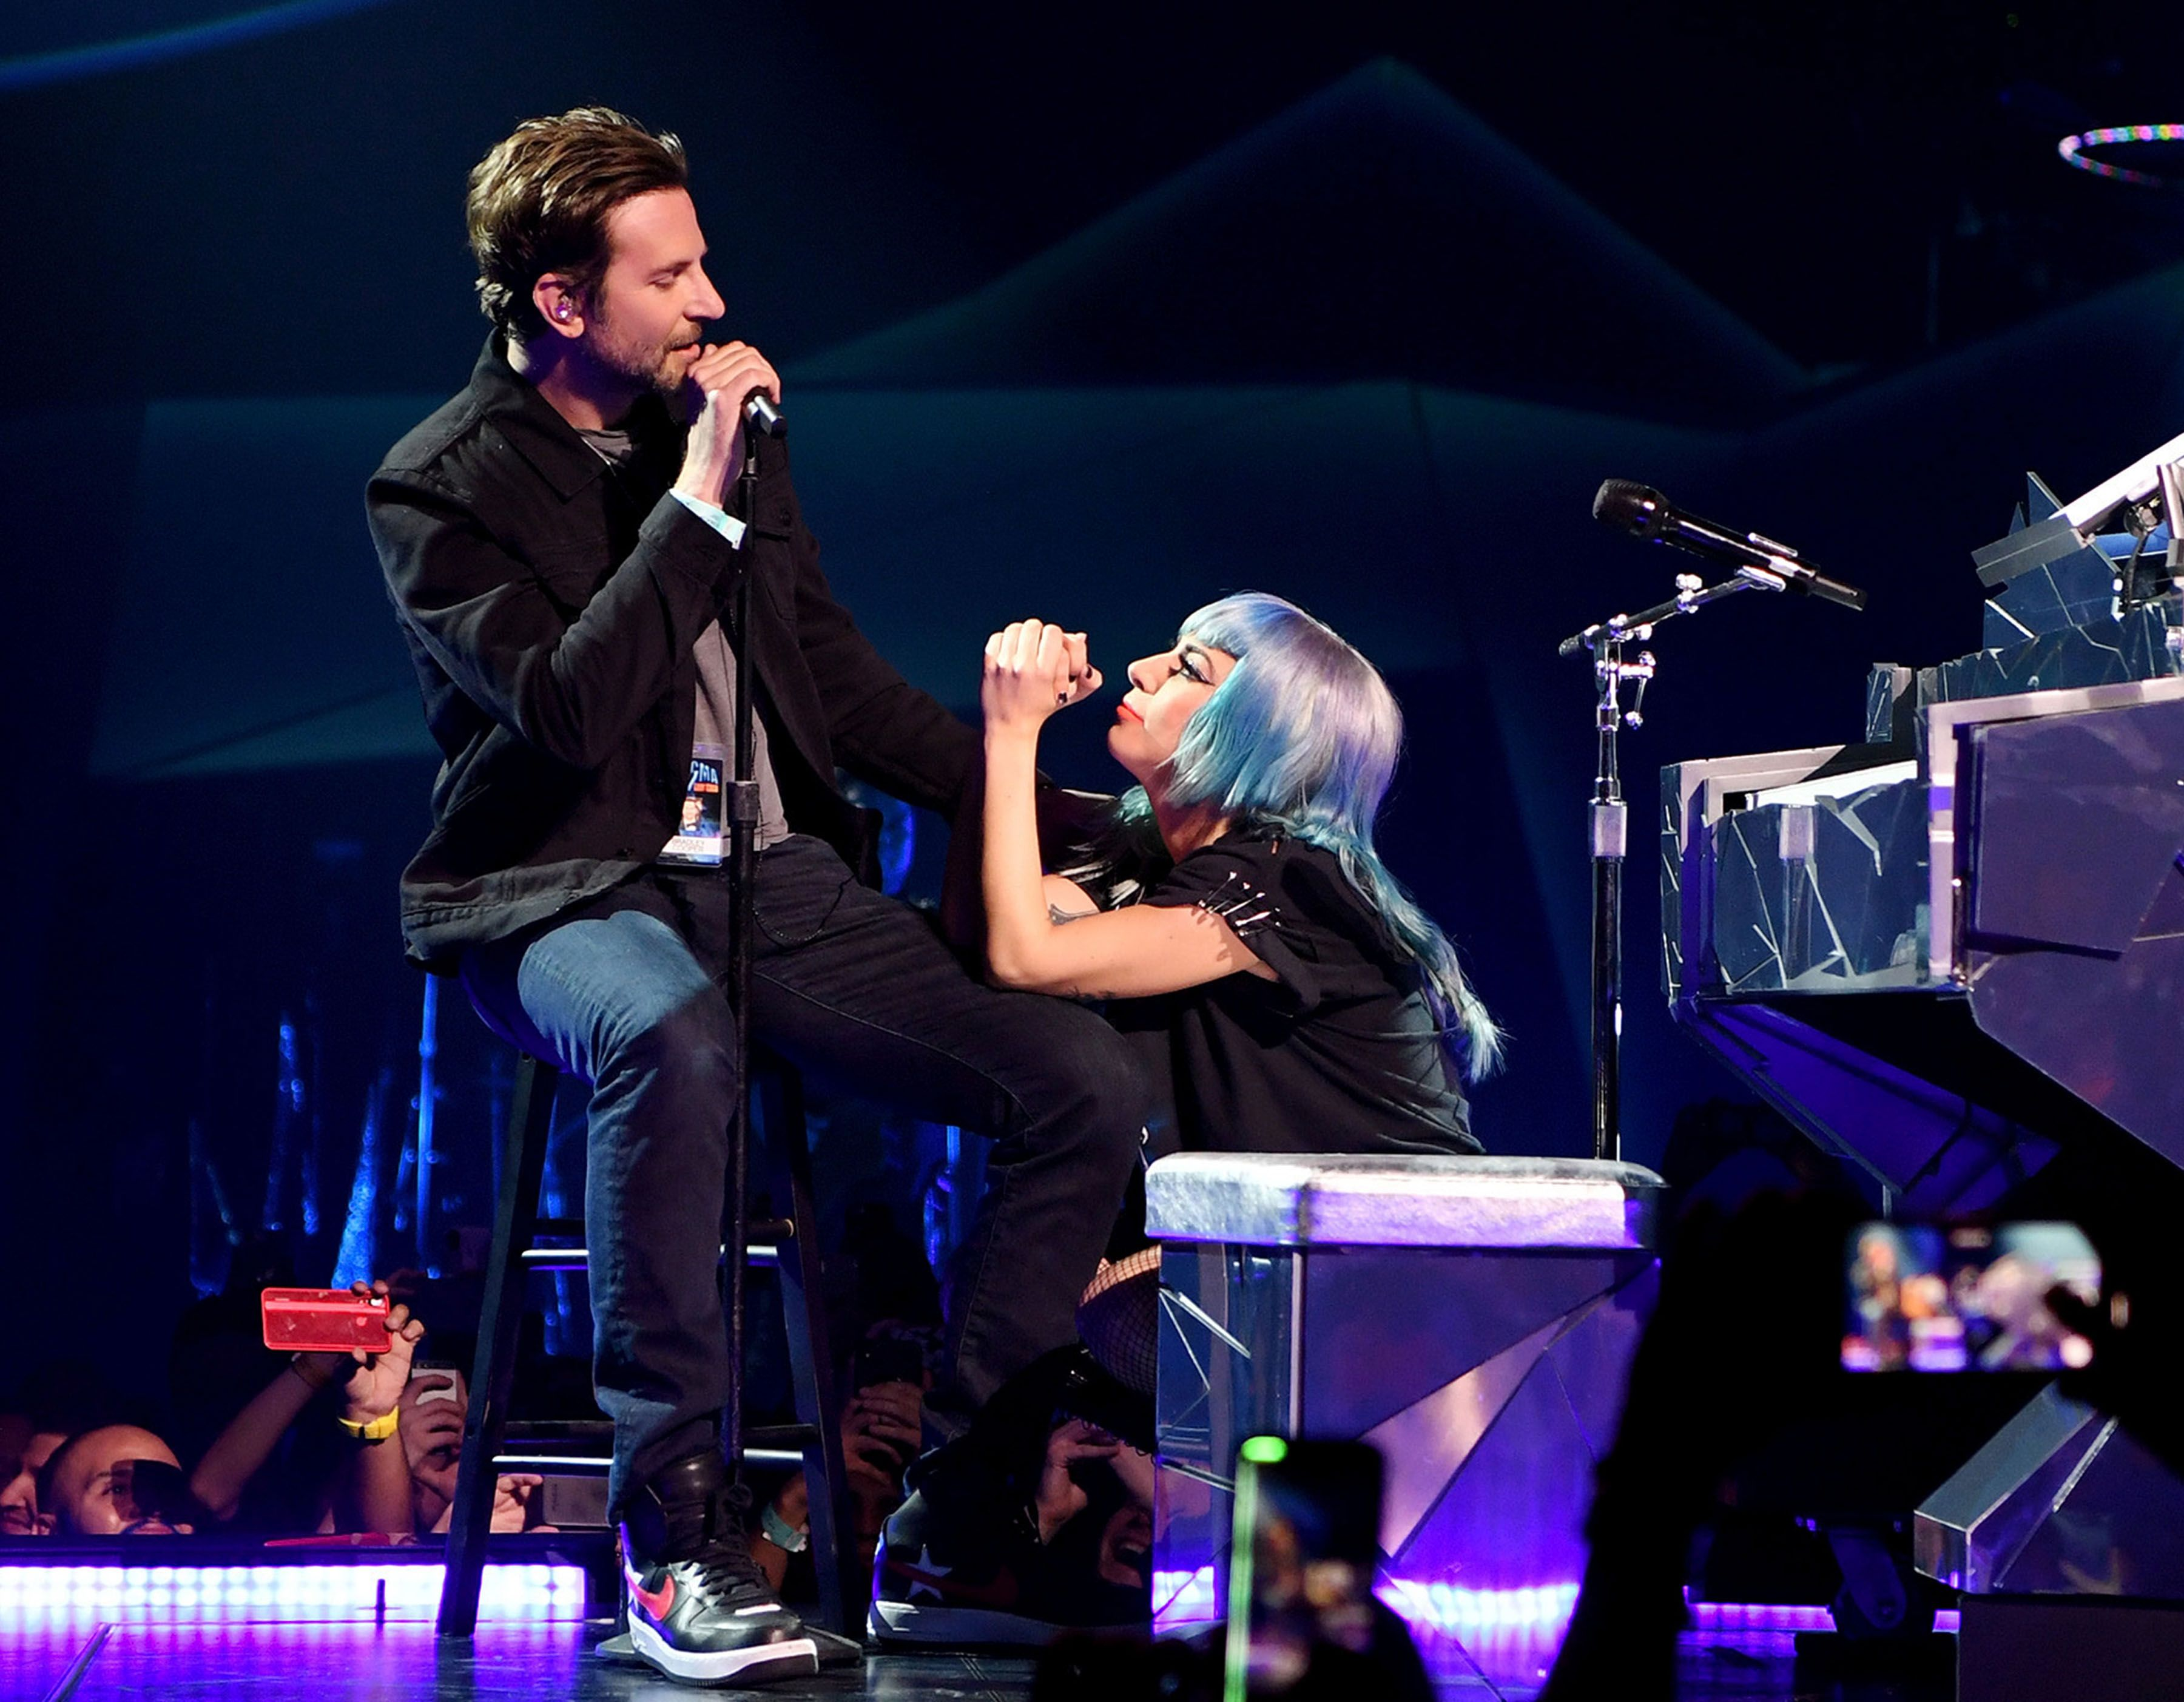 Lady Gaga And Bradley Cooper At Park Theater At Park MGM In Las Vegas